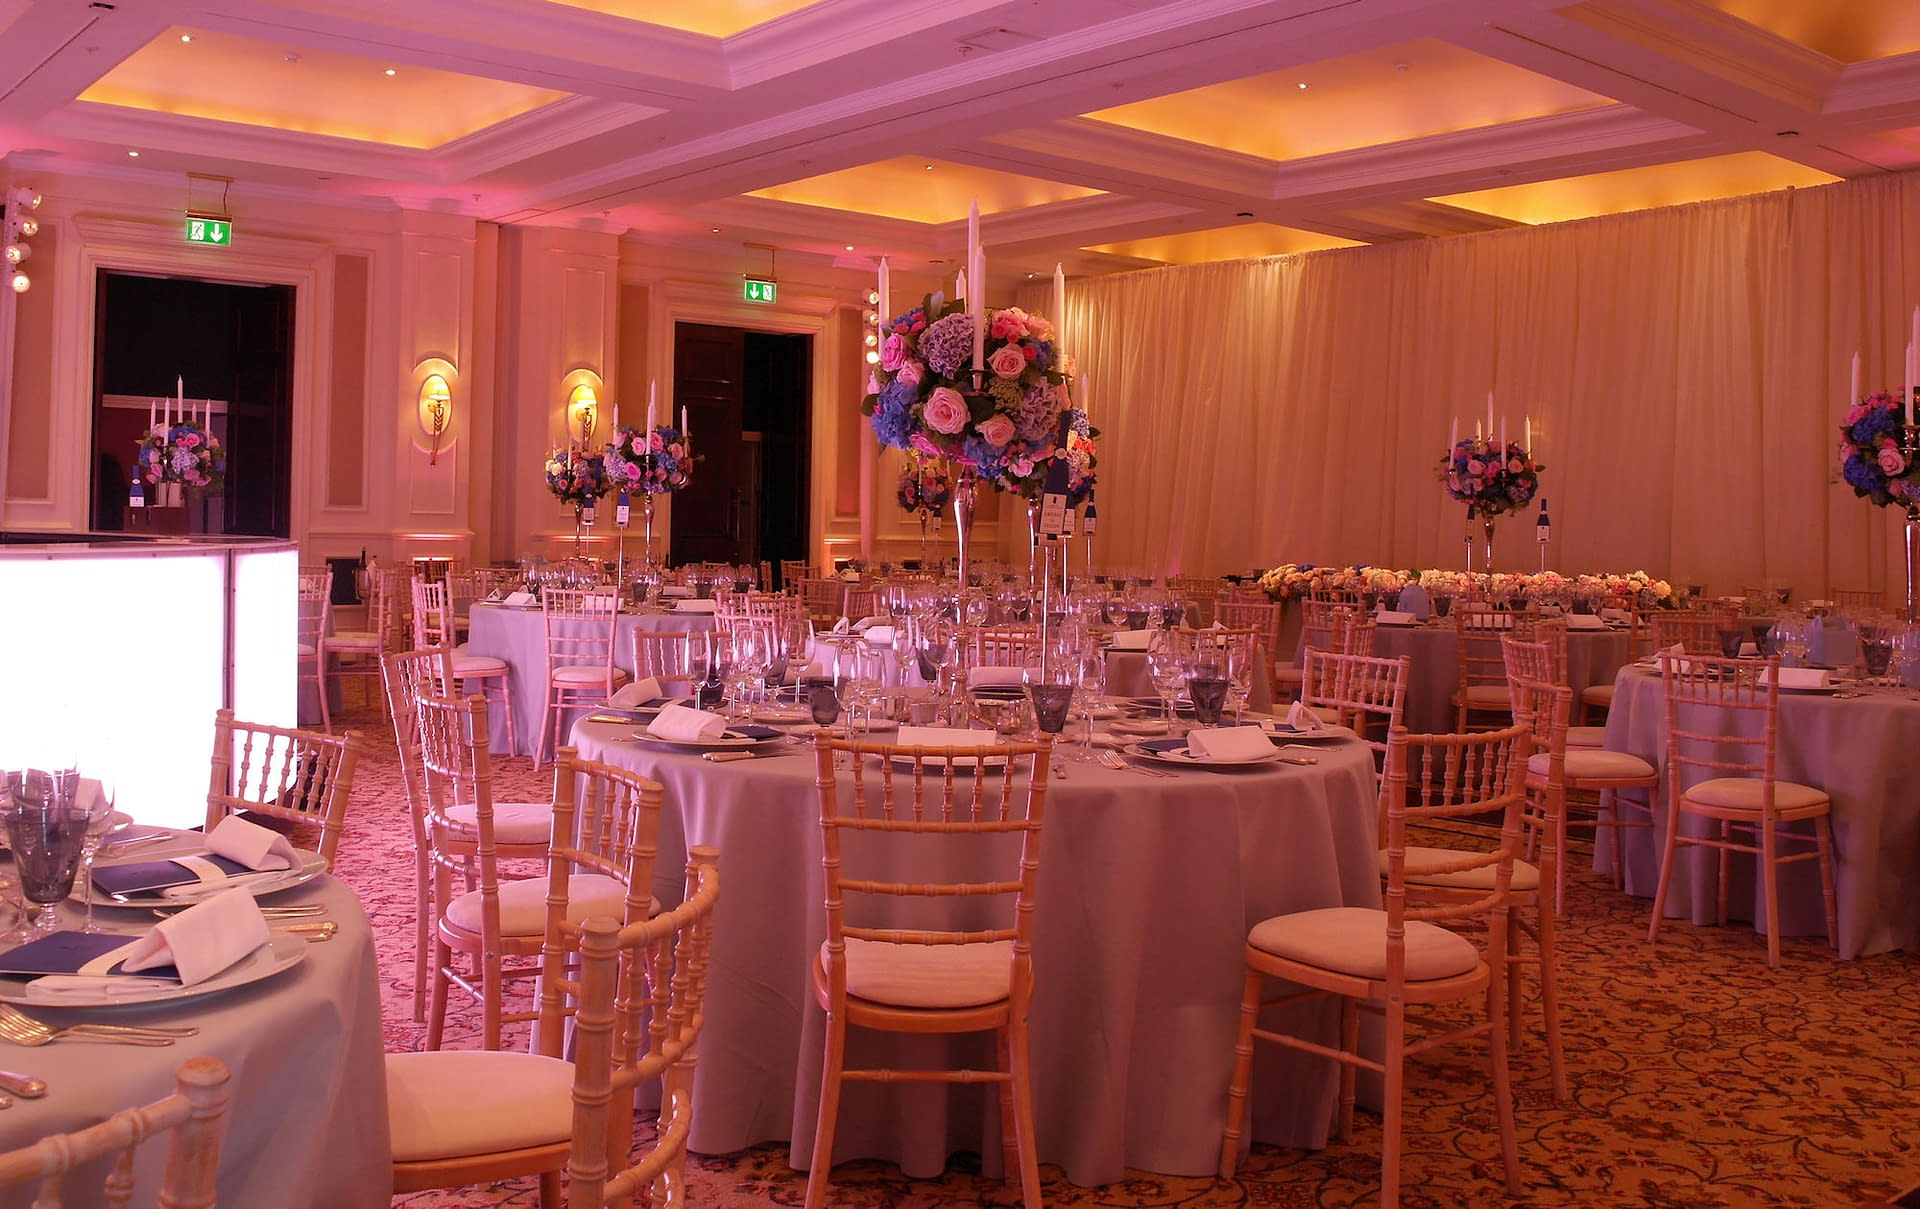 Partition drapes, mood lighting and illuminated dance floor at The Four Seasons Hook, UK wedding venue